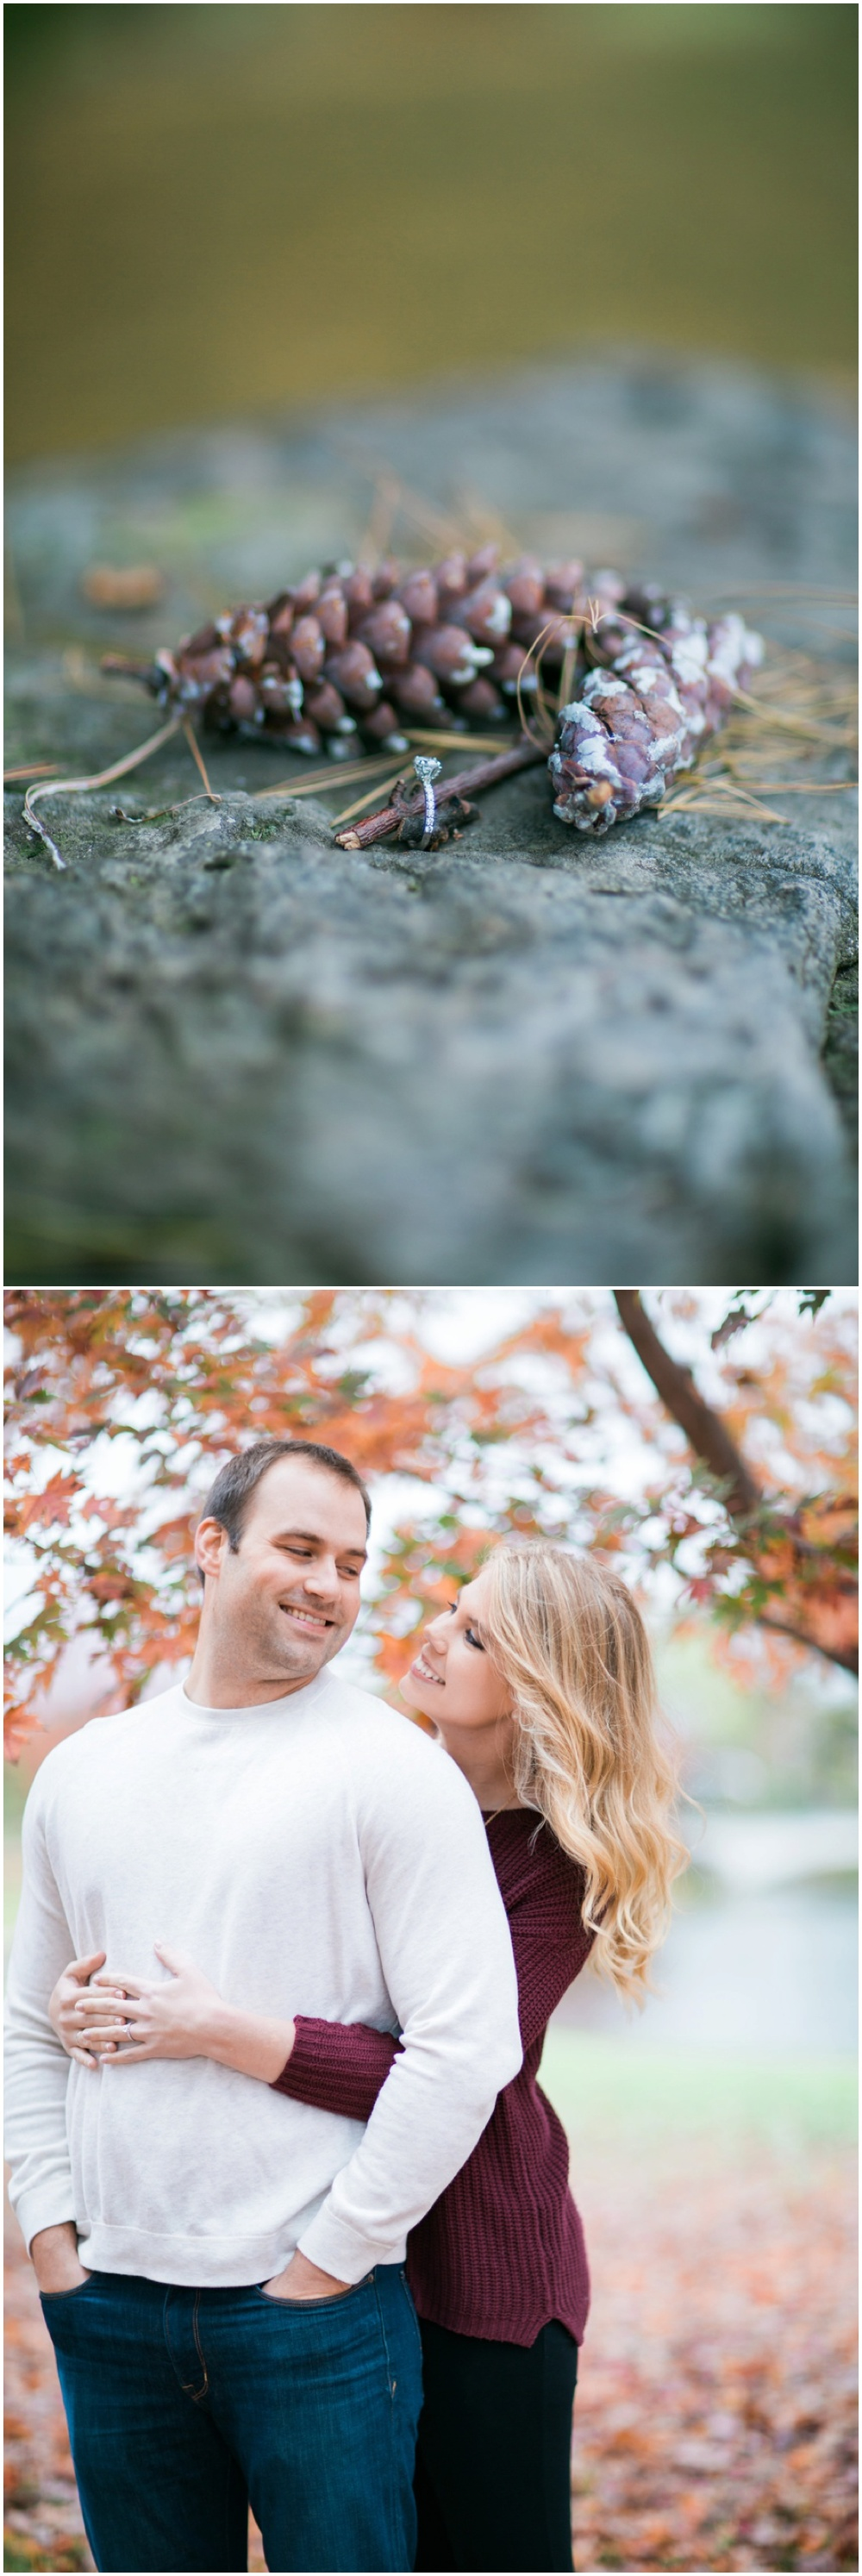 st-louis-engagement-photographs5.jpg